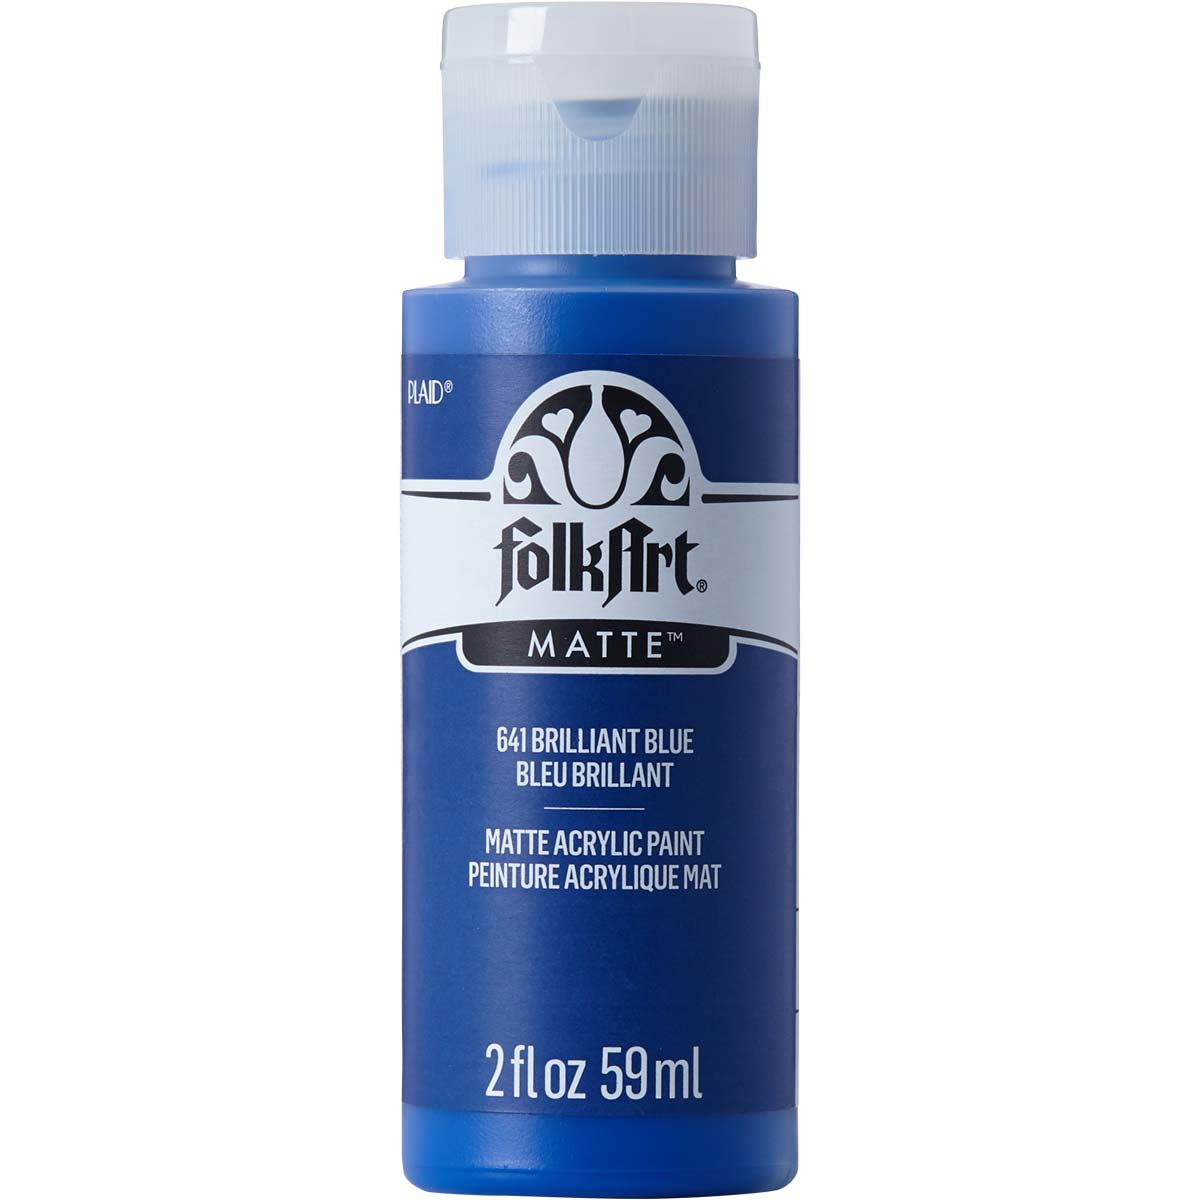 FolkArt ® Acrylic Colors - Brilliant Blue, 2 oz. - 641